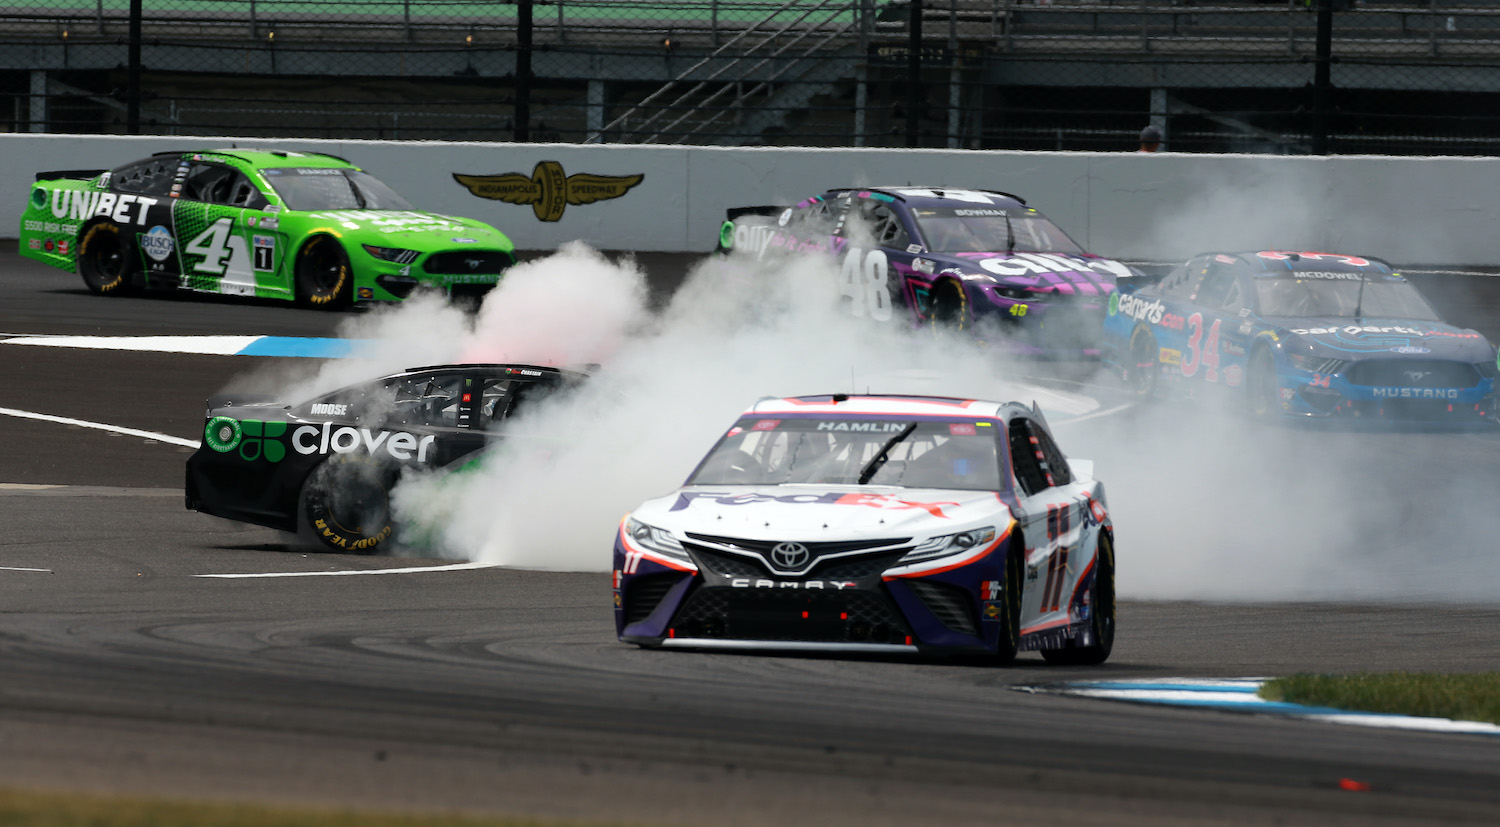 INDIANAPOLIS, INDIANA - AUGUST 15: Denny Hamlin, driver of the #11 FedEx Ground Toyota, Michael McDowell, driver of the #34 CarParts.com Ford, Alex Bowman, driver of the #48 Ally Chevrolet, and Kevin Harvick, driver of the #4 Unibet Ford, avoid Ross Chastain, driver of the #42 Clover Chevrolet, spin during the NASCAR Cup Series Verizon 200 at the Brickyard at Indianapolis Motor Speedway on August 15, 2021 in Indianapolis, Indiana. (Photo by Sean Gardner/Getty Images)